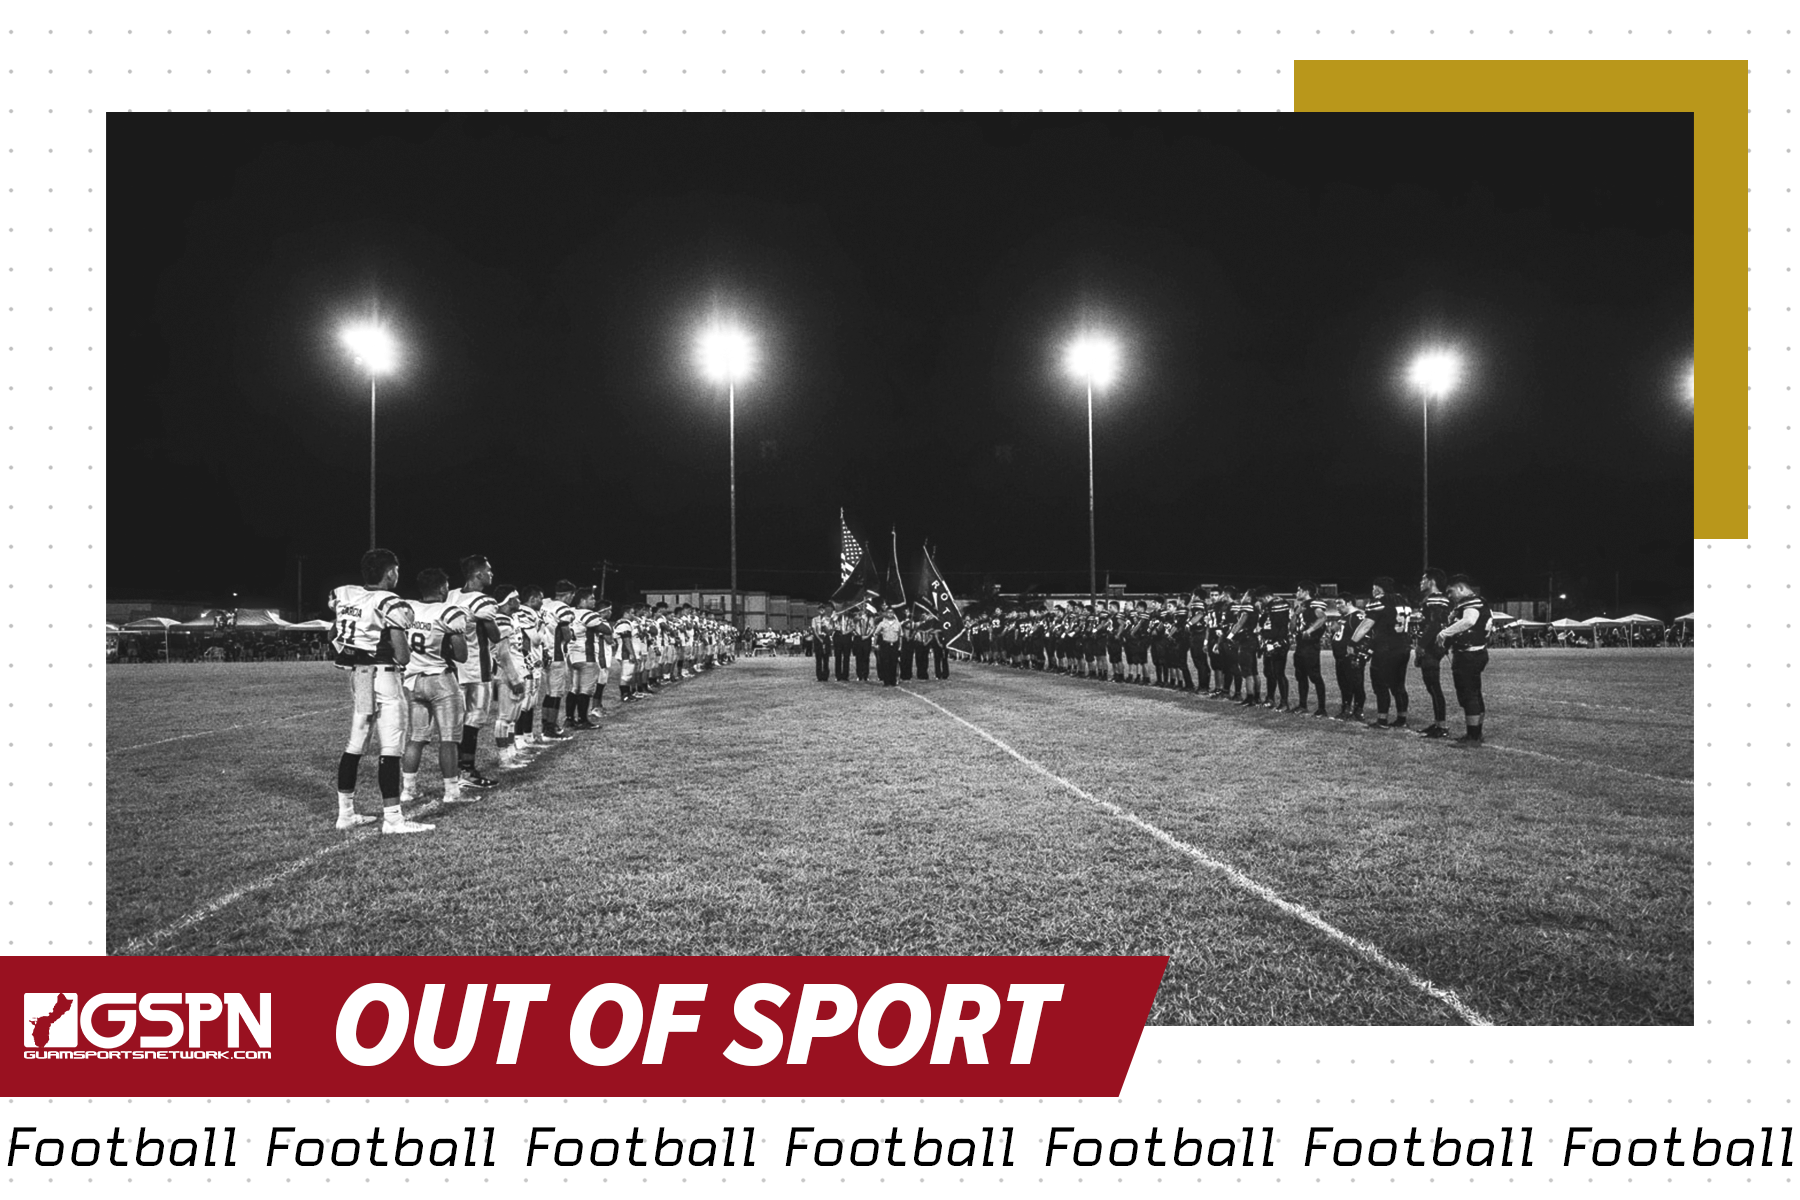 Out_of_Sport_Football